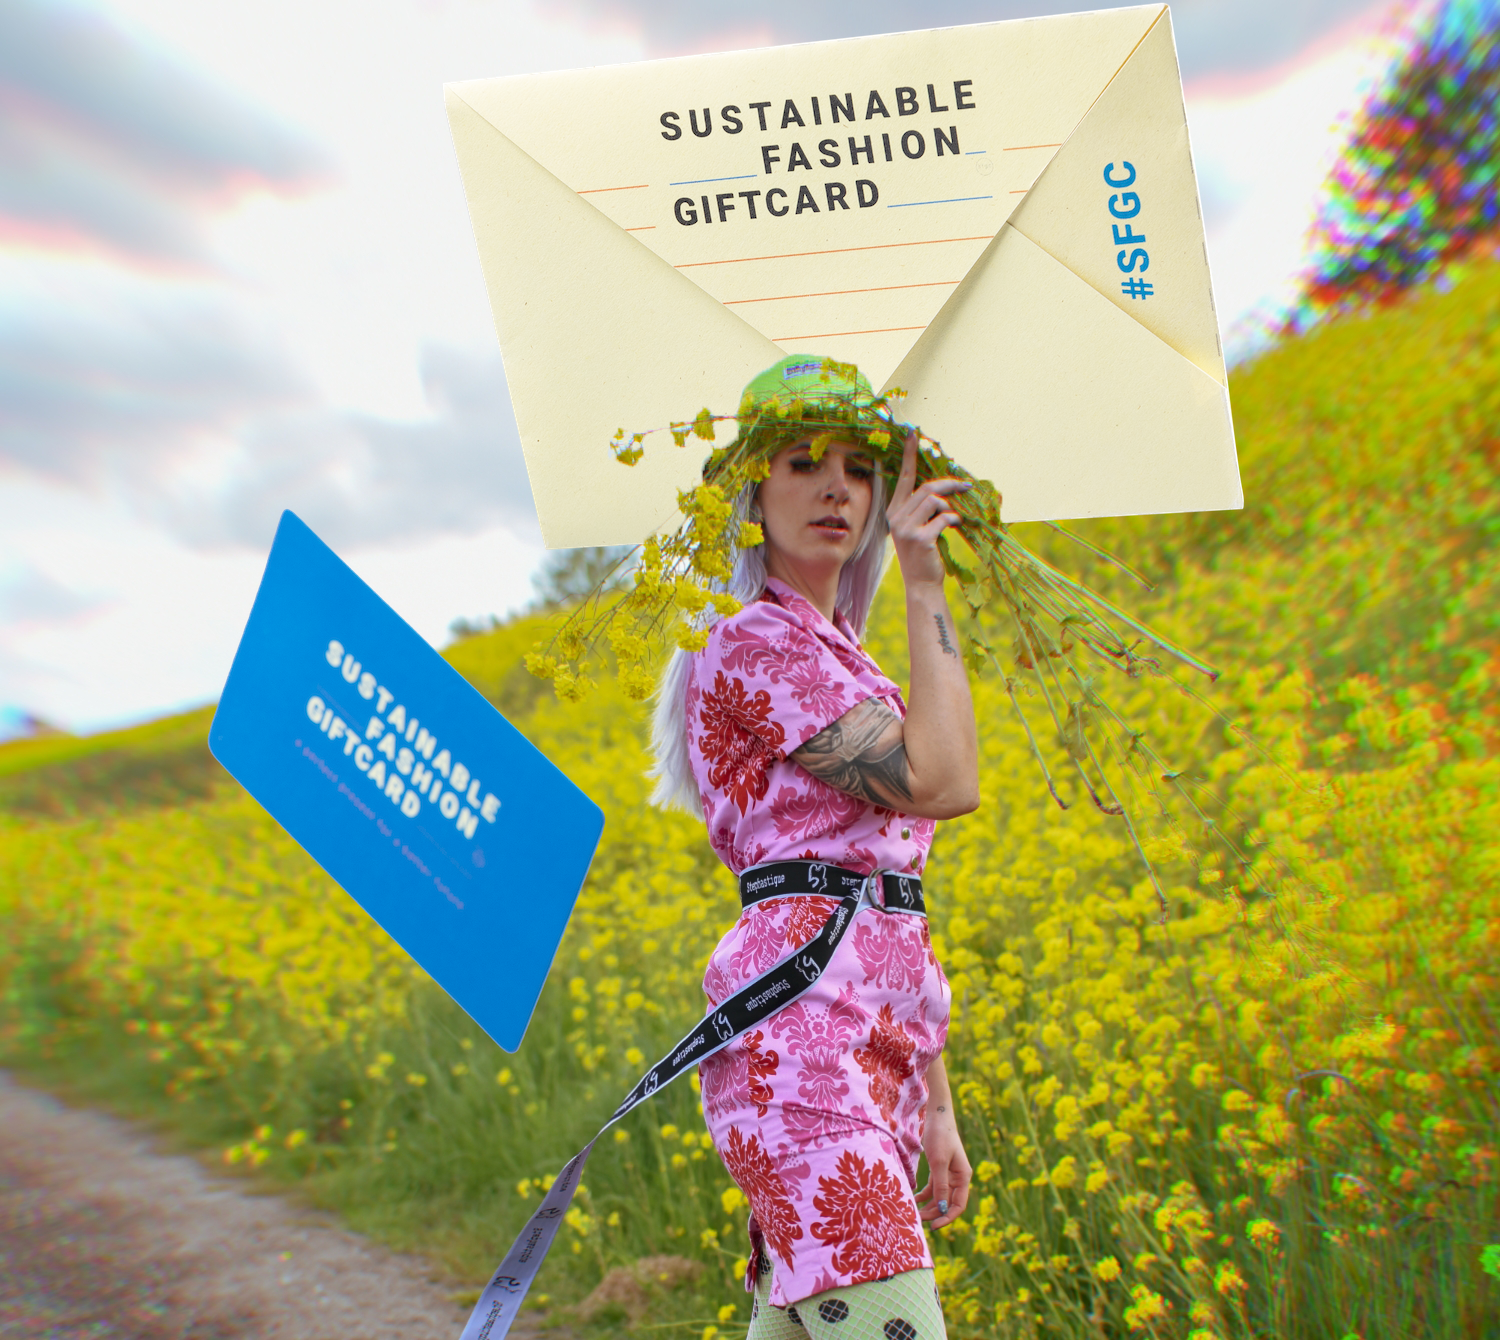 The Sustainable Fashion Gift Card can now also be redeemed at Stephastique!